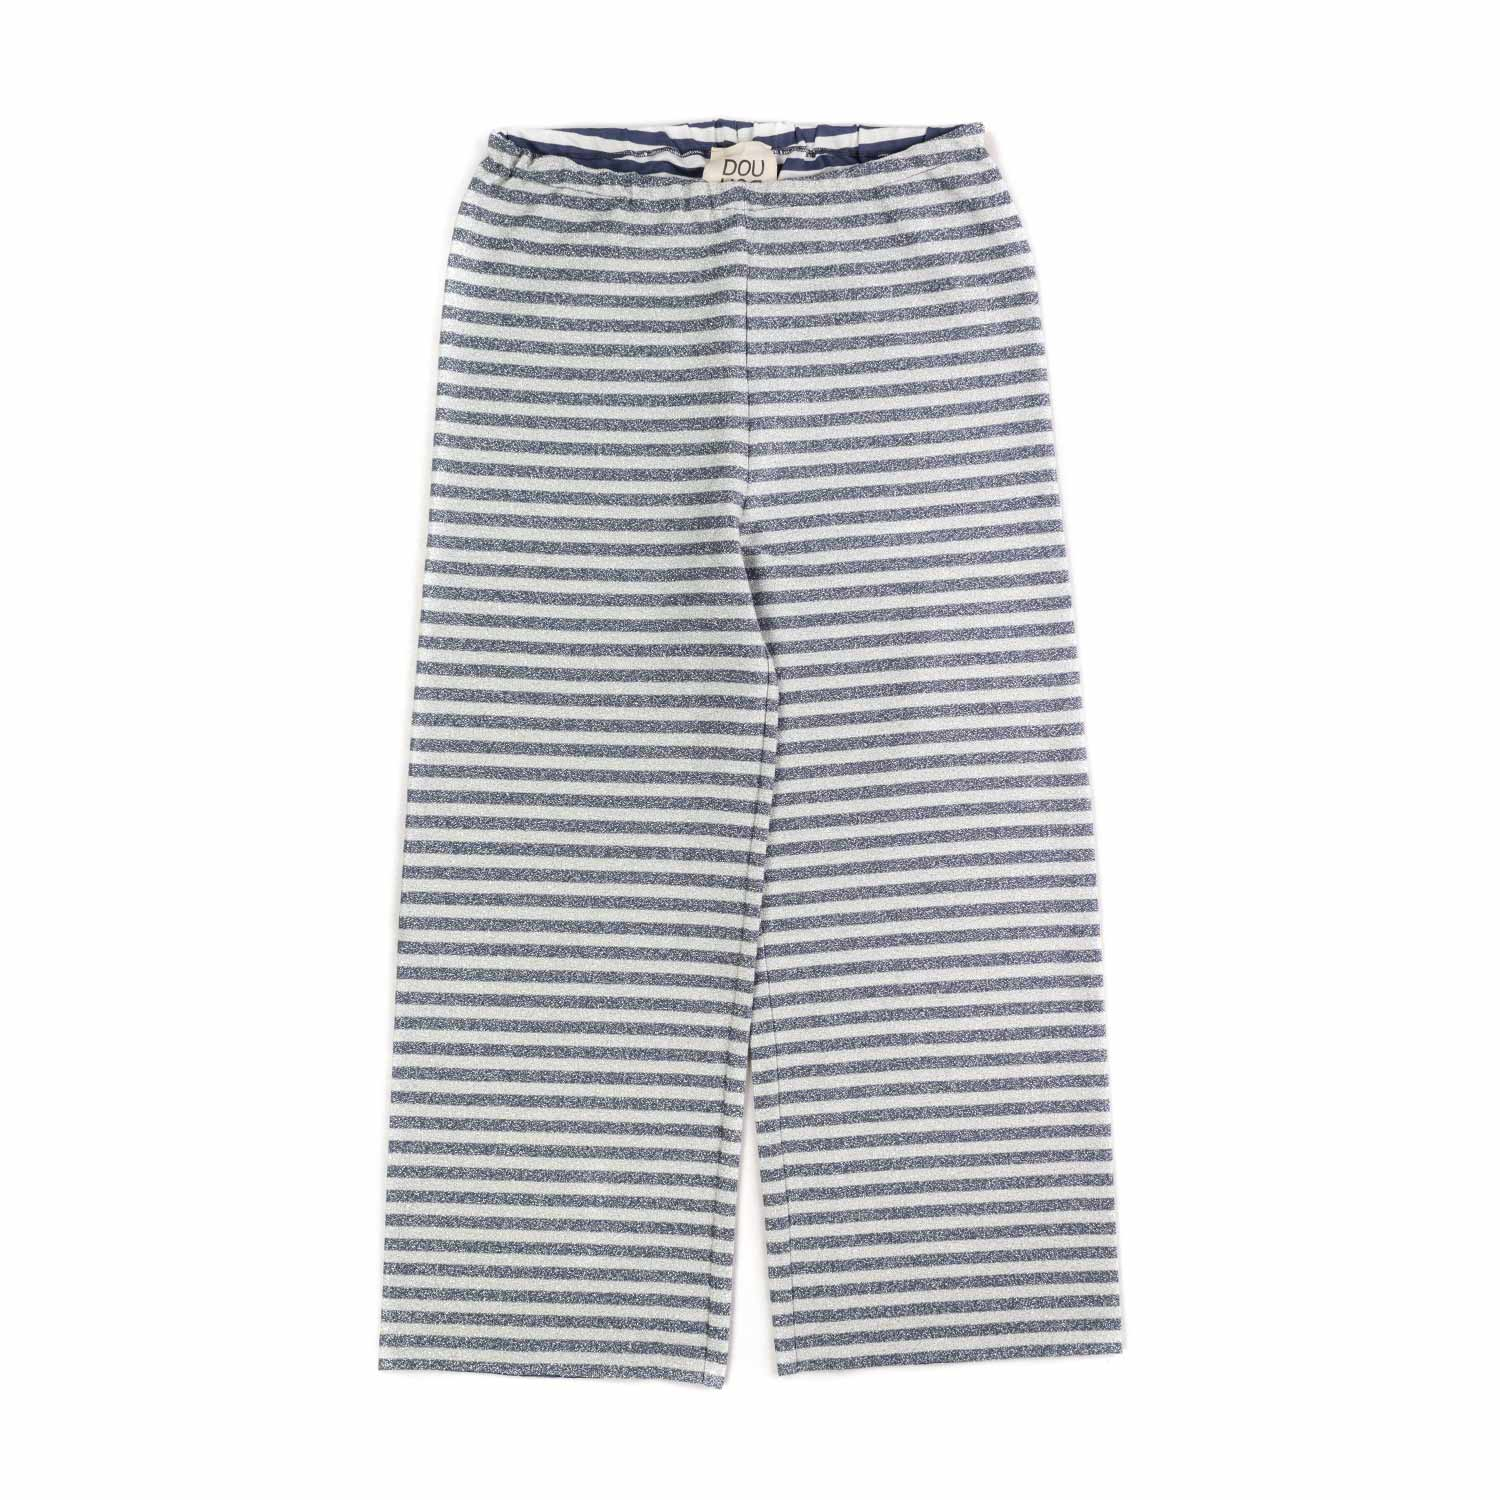 b7413ecdbe6d ... Jeans, Bermuda shorts; Girl Striped Palazzo Trousers.  28877-douuod_pantaloni_a_righe_bambina_teen-1.jpg